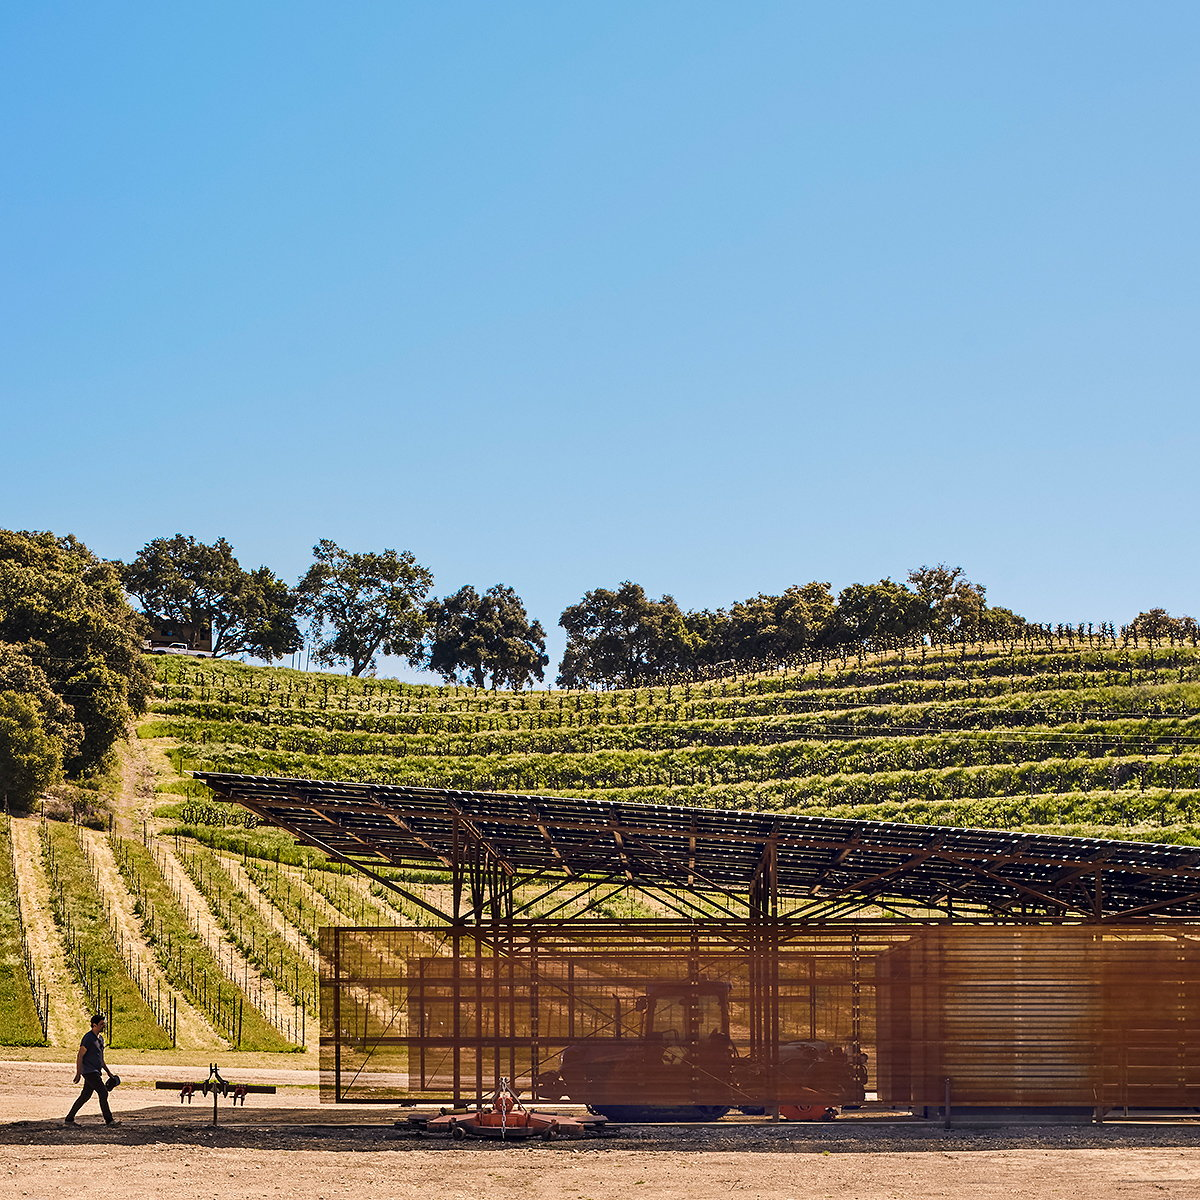 The Saxum Vineyard Equipment Barn by Clayton and Little